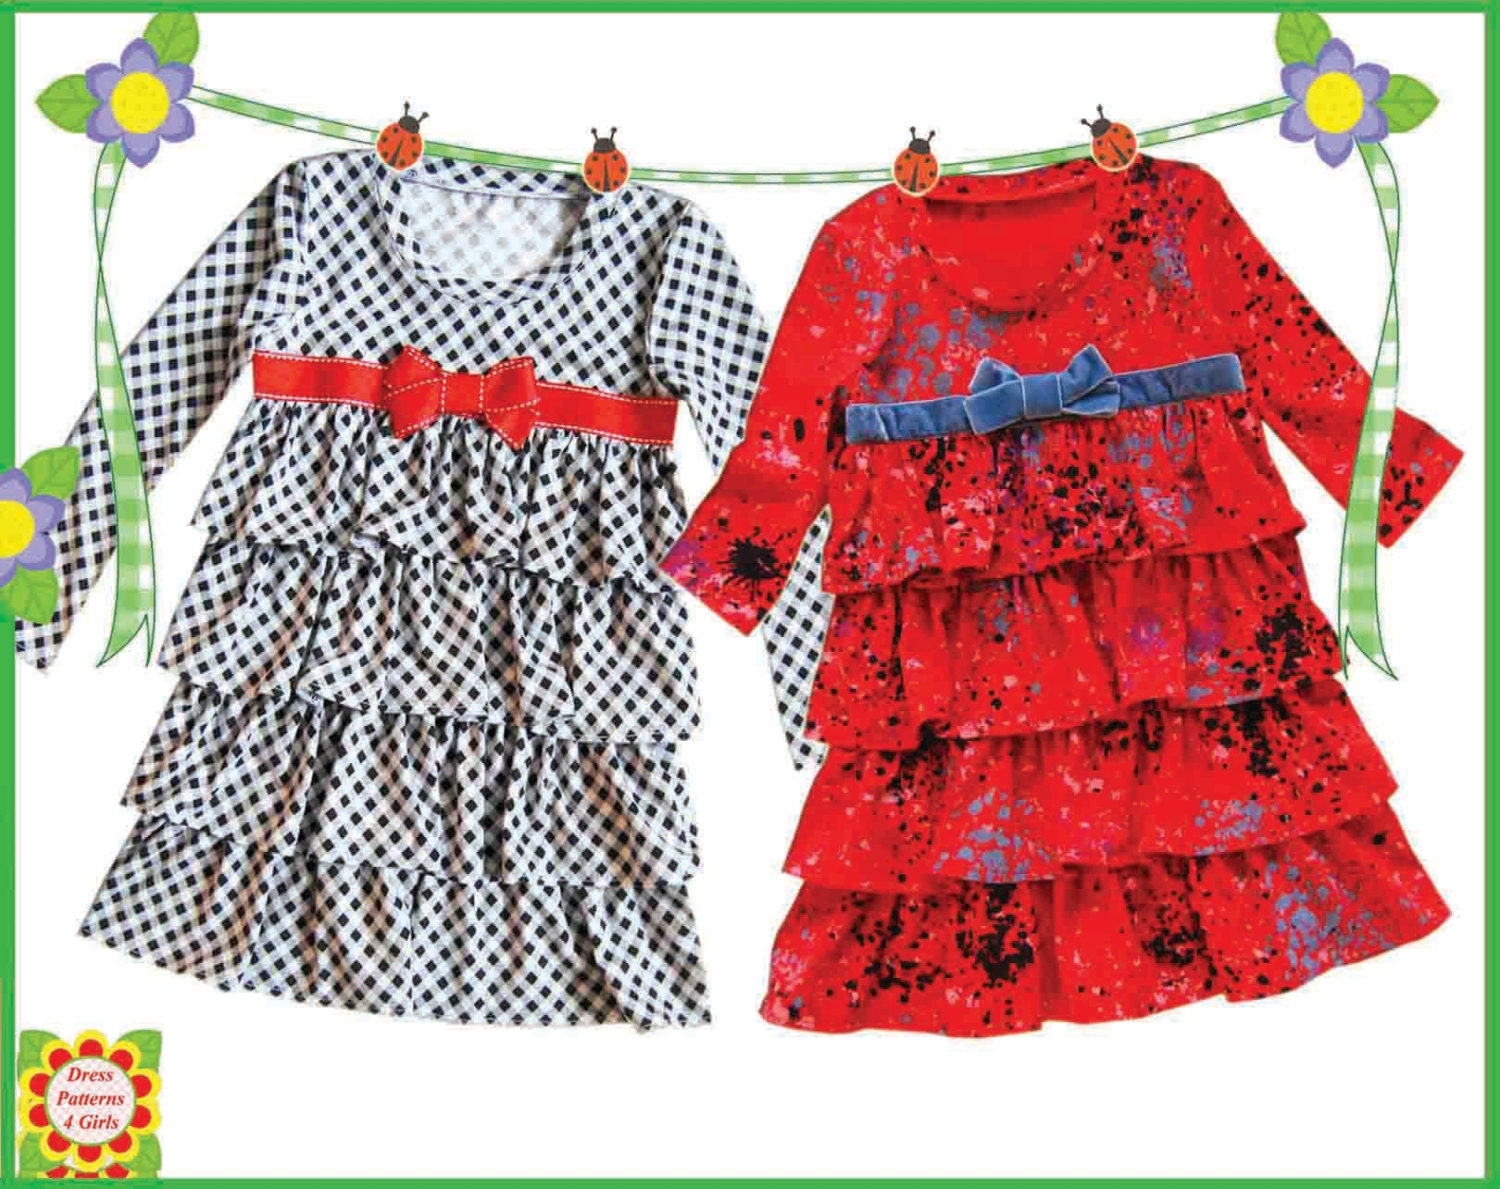 Knit Dress Sewing Pattern : Sugar & Spice Knit Girls DRESS PATTERNS by DressPatterns4Girls